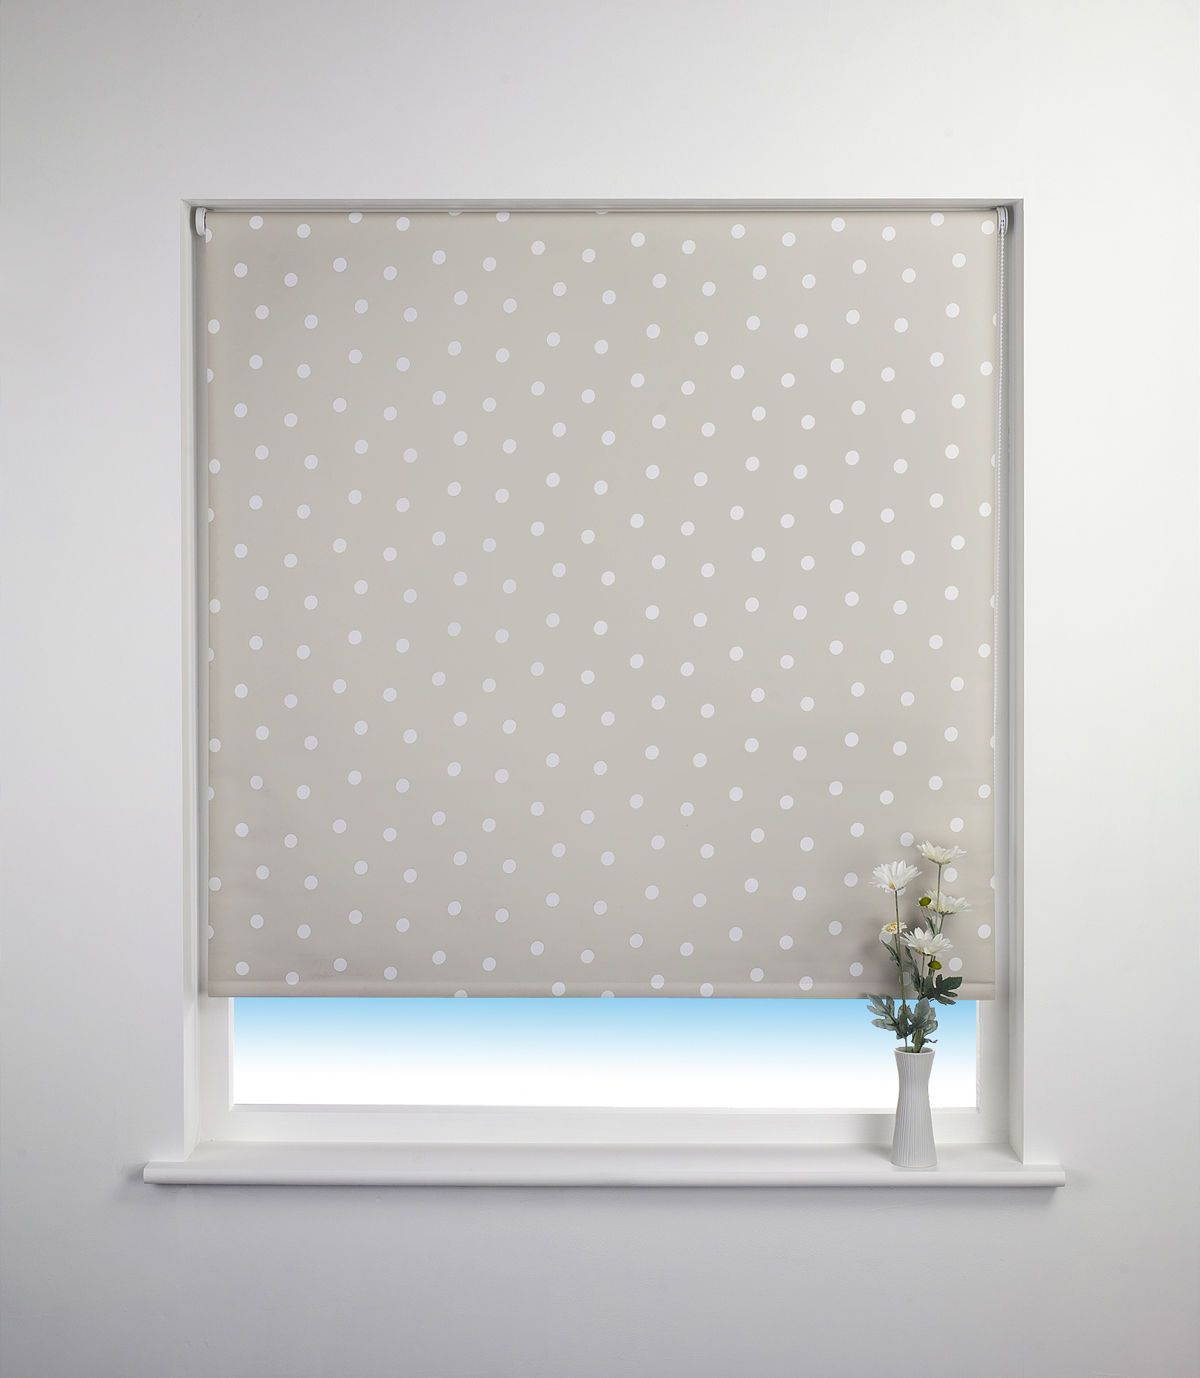 Blackout Bedroom Blinds Enchanting Blackout Blinds For Baby Room  Interior House Paint Colors Check Inspiration